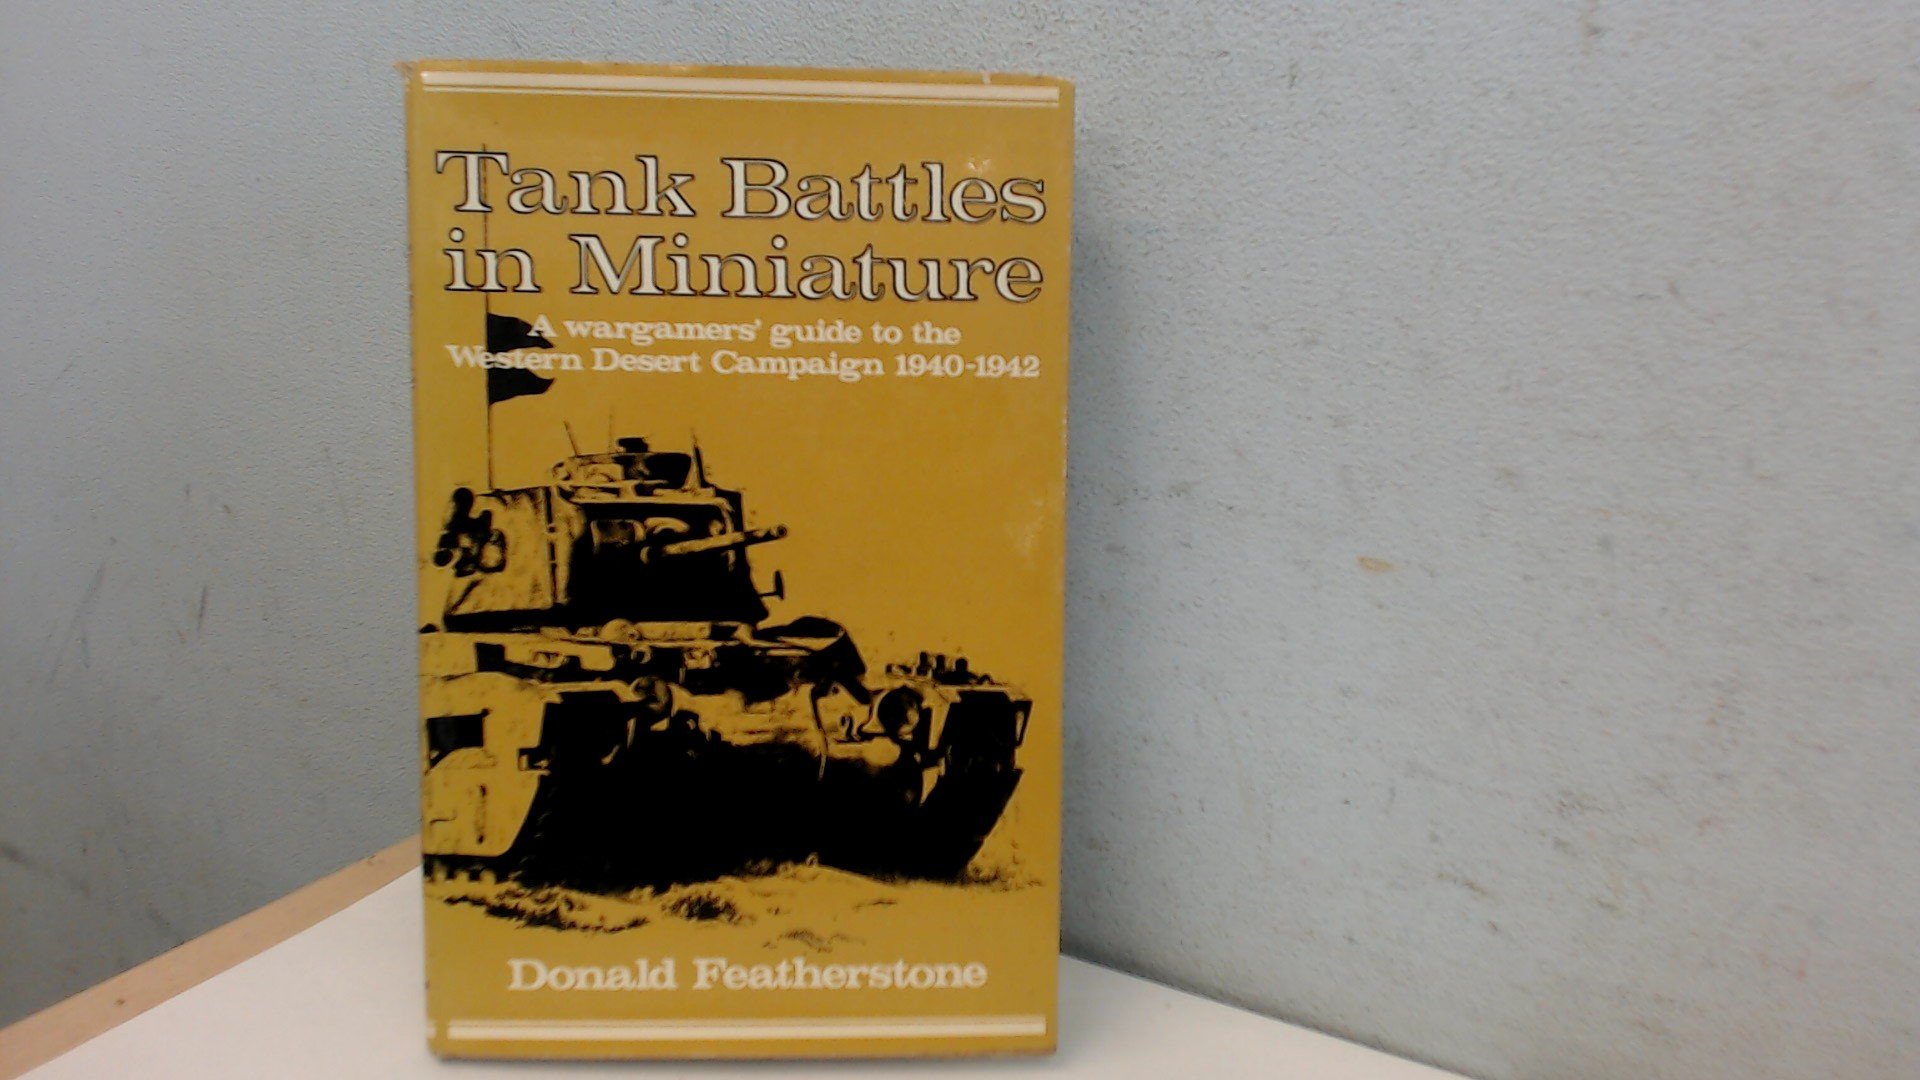 Tank battles in miniature: wargamers' guide to the Western Desert Campaign, 1940-42